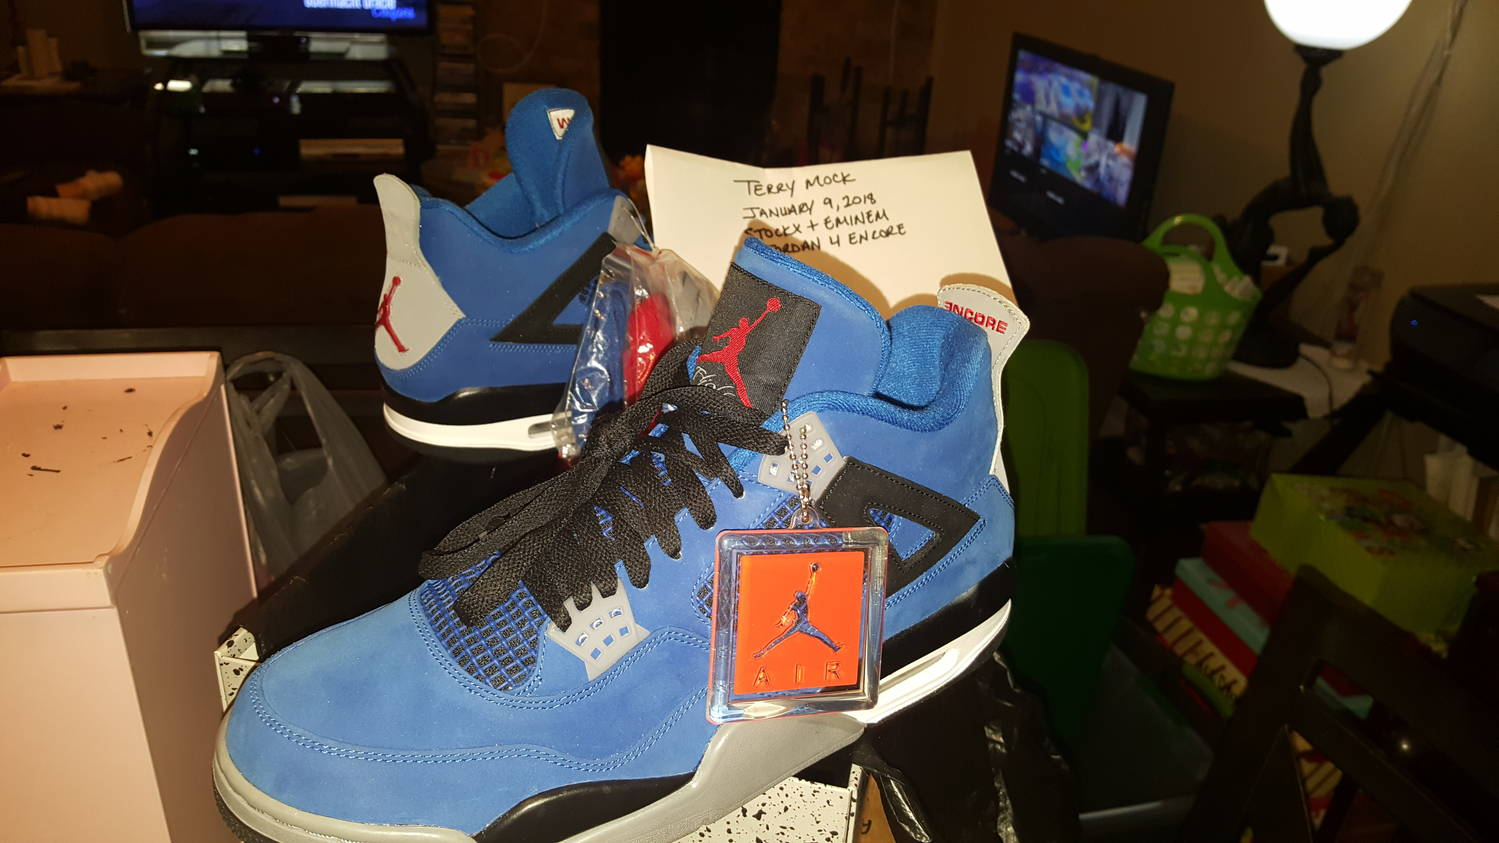 3240968a6ffbb3 Being that I am an avid collector of jordans and the 4s are my favorite  silhouette and Eminem is one of my favorite artists I am perfectly content  to just ...